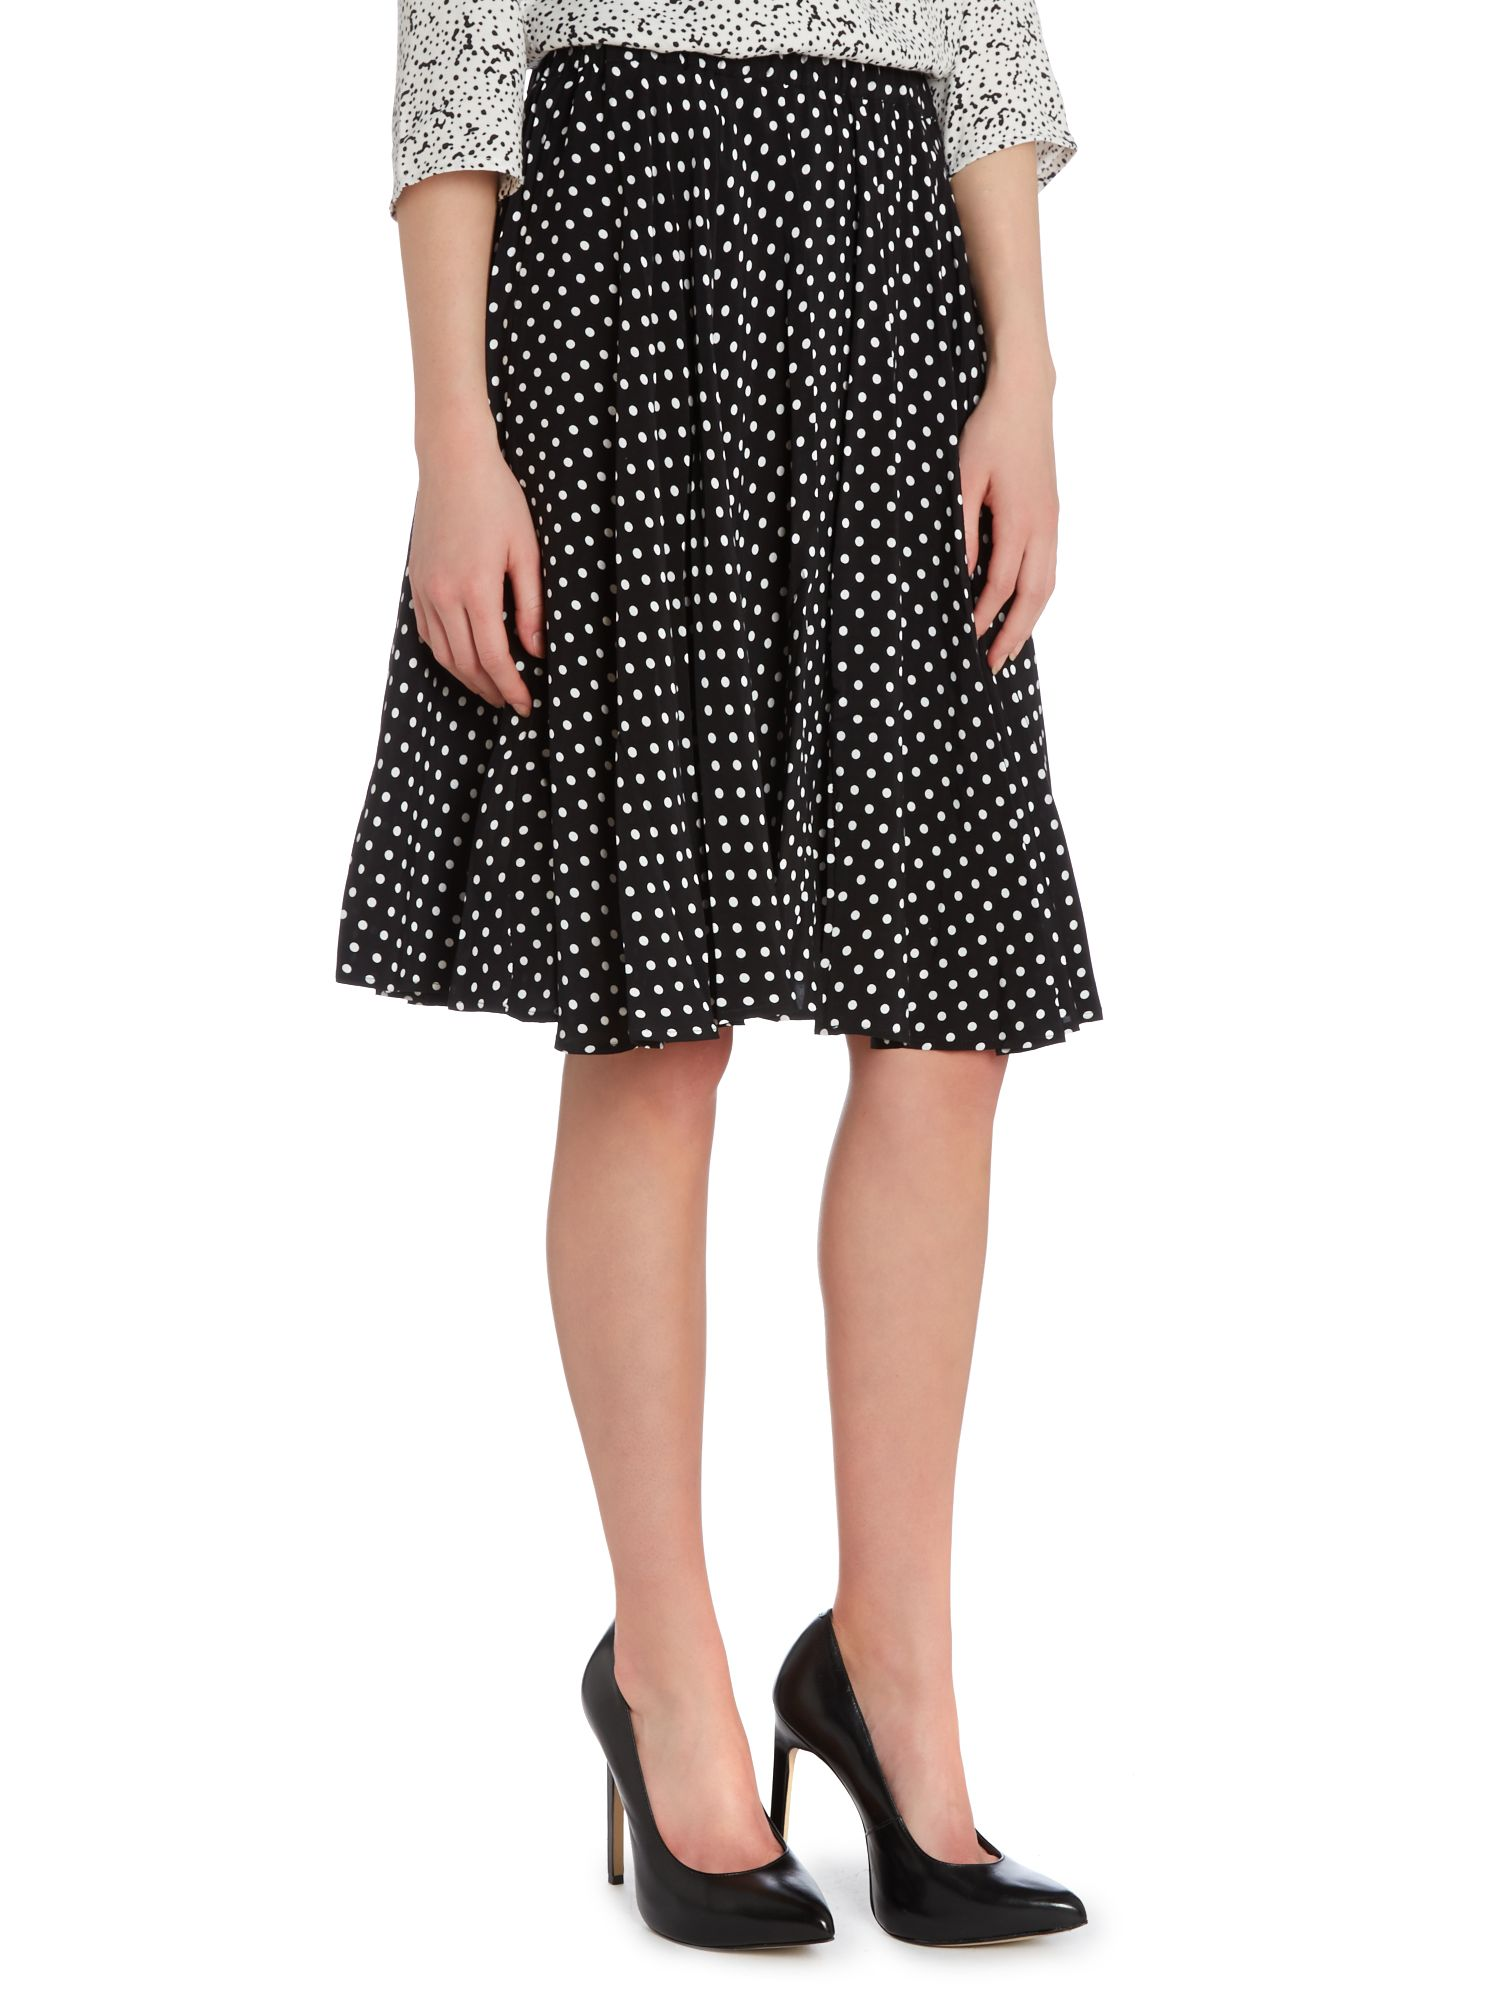 Polka dot full skirts